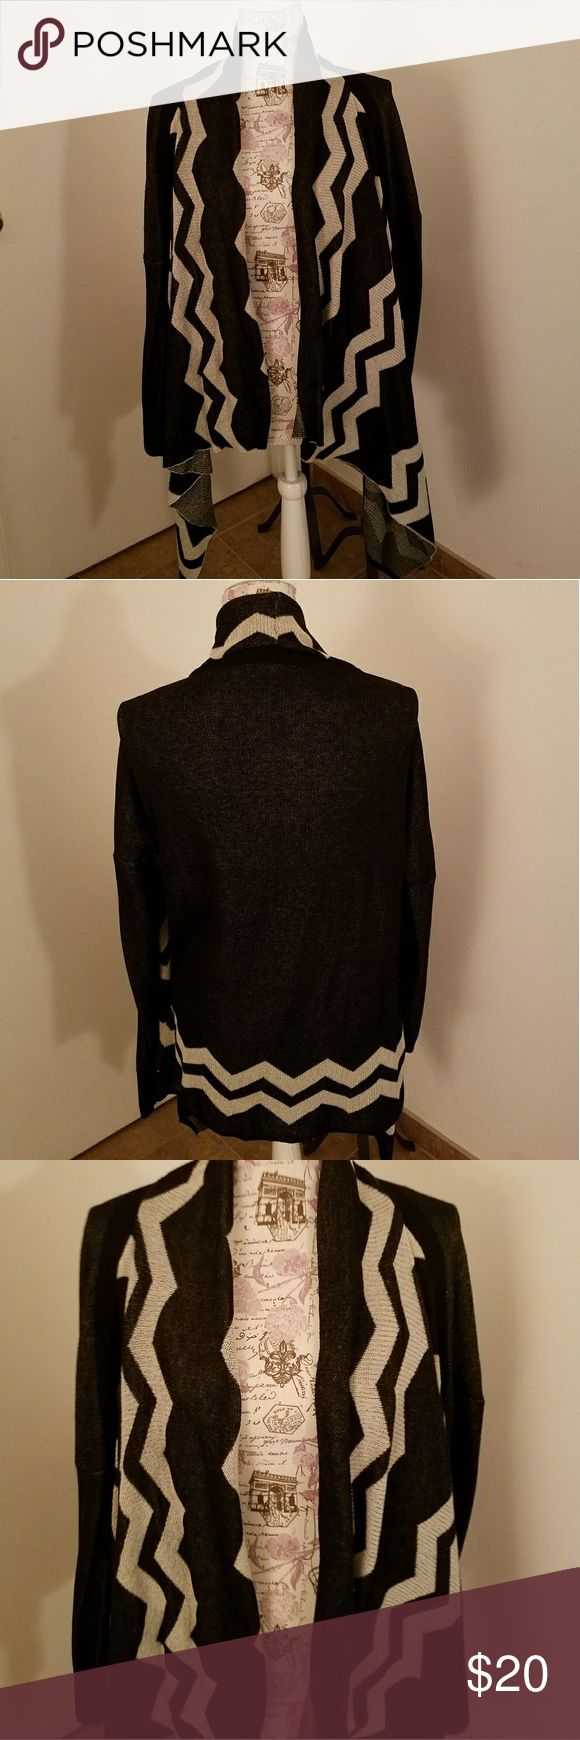 Black & Creme Cardigan Black & Creme Cardigan. Size M/L. In great condition. Sweaters Cardigans